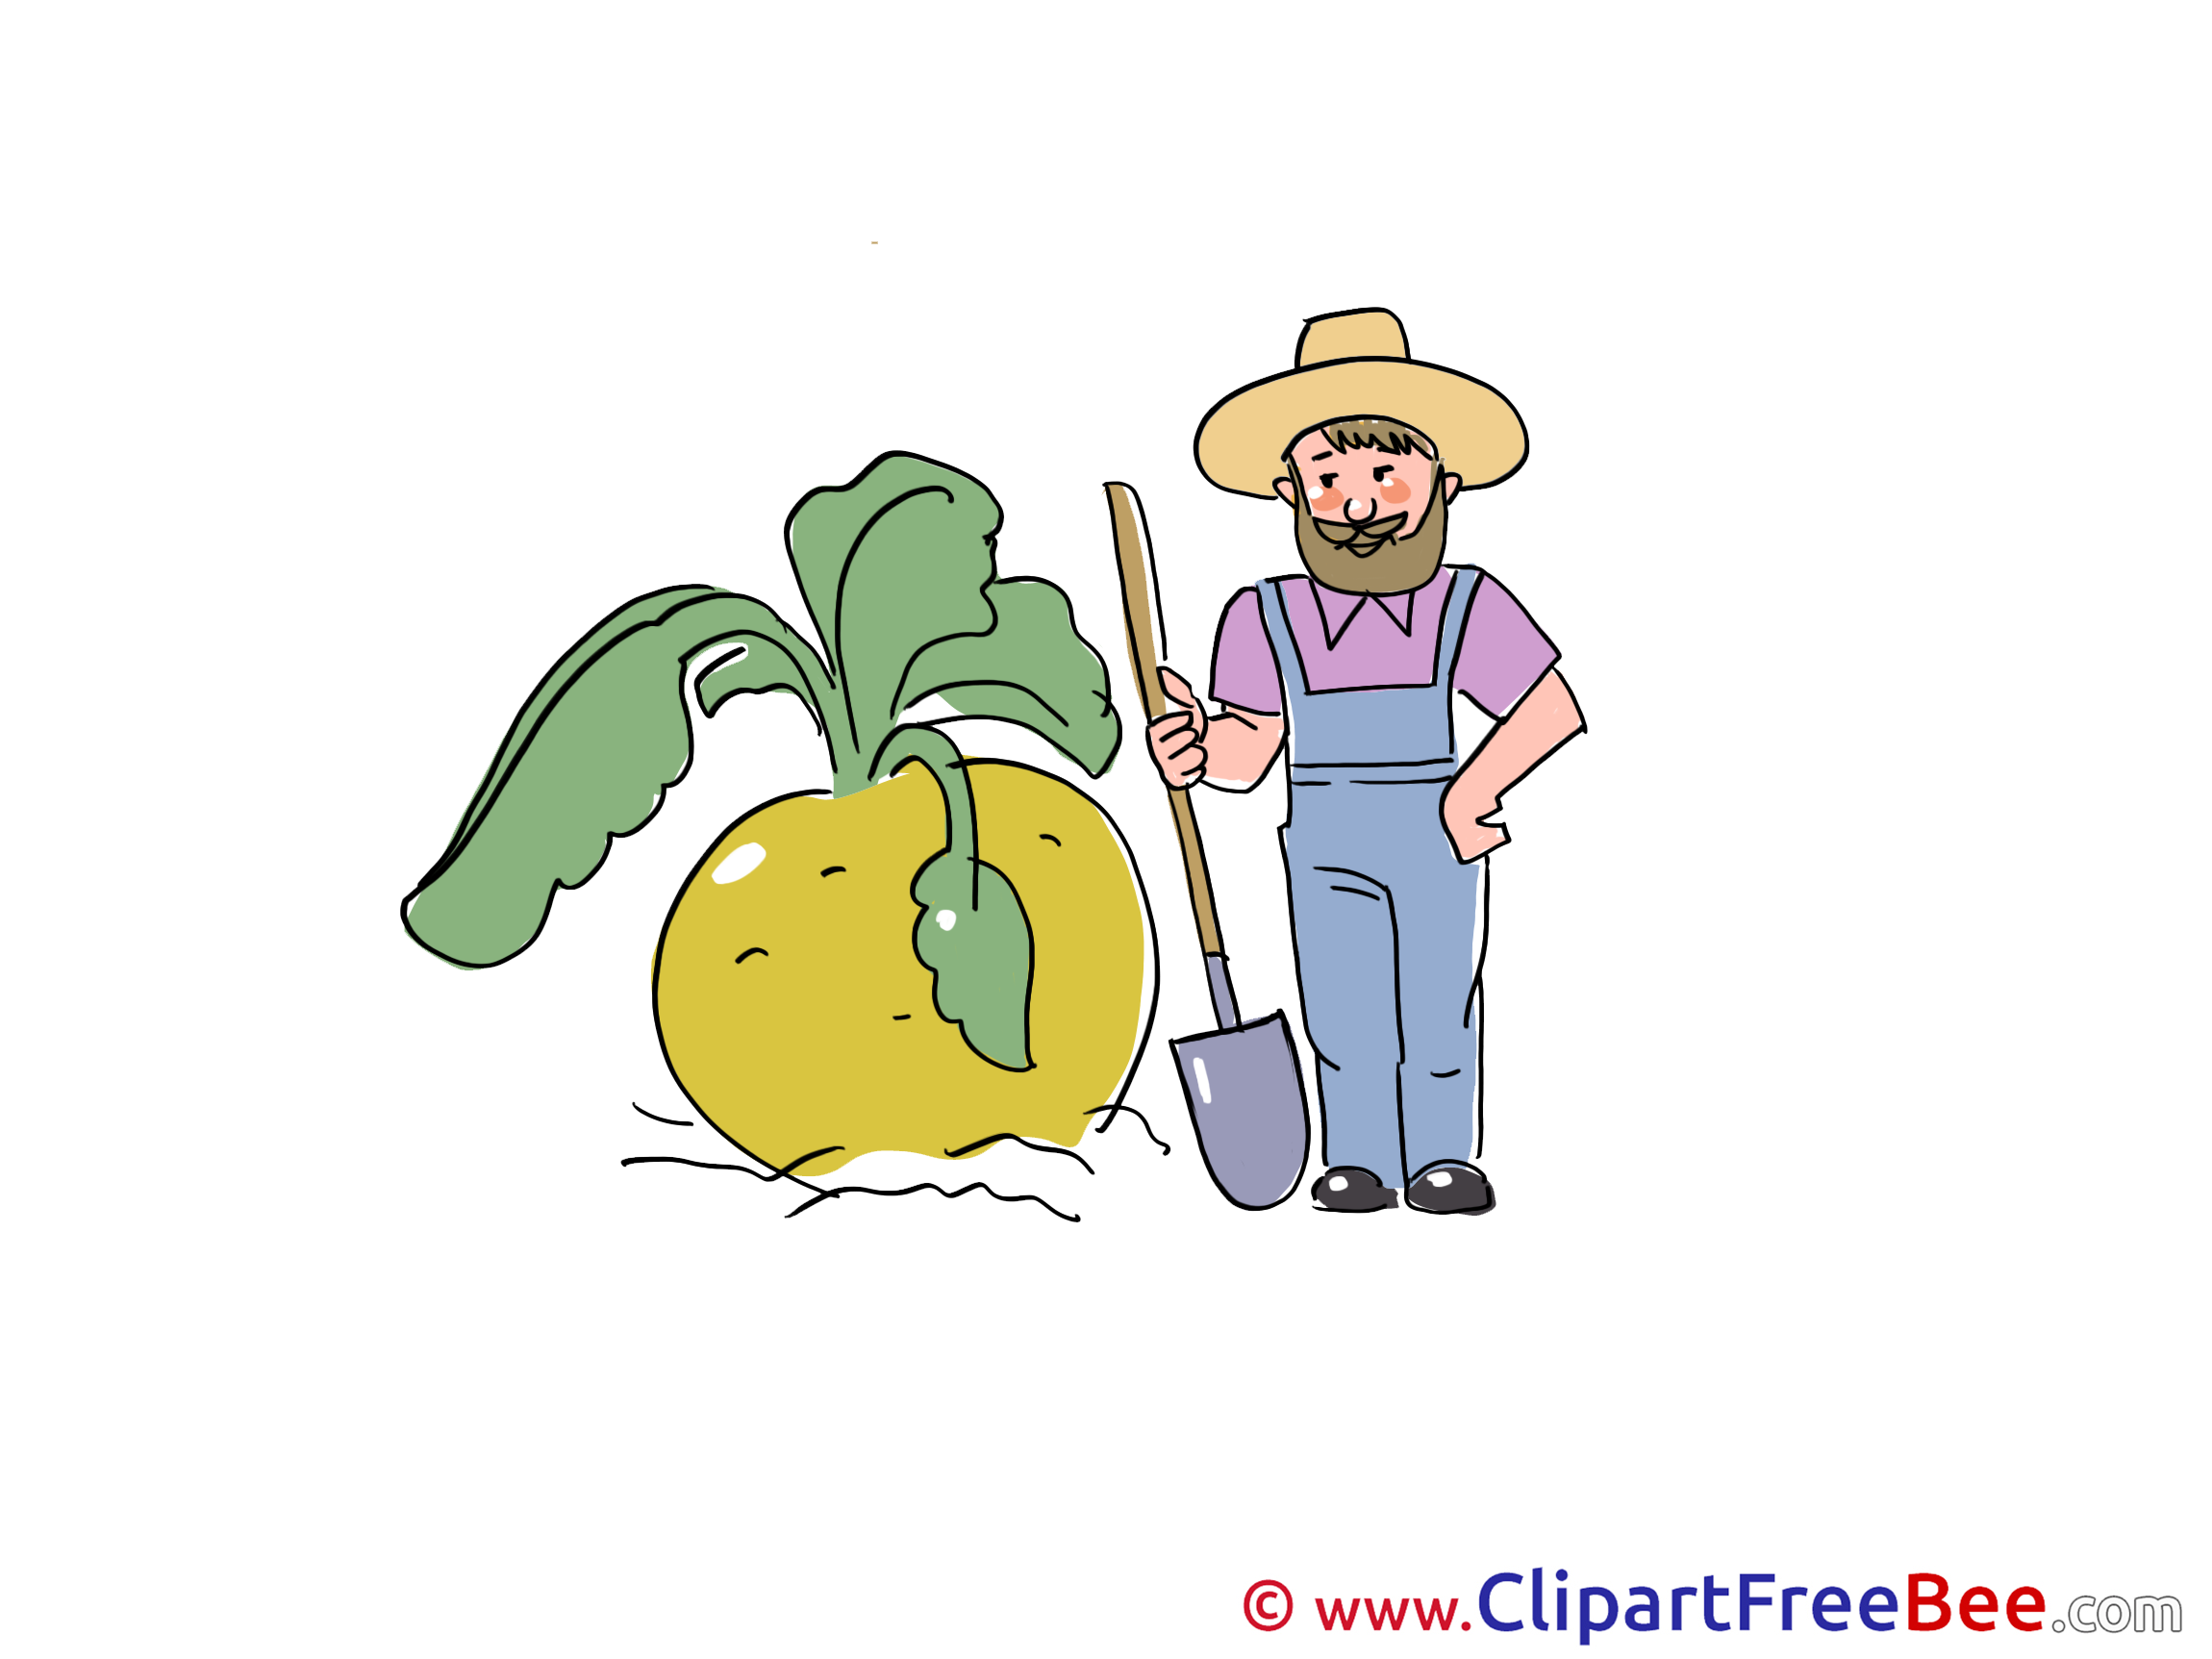 Turnip Man download printable Illustrations